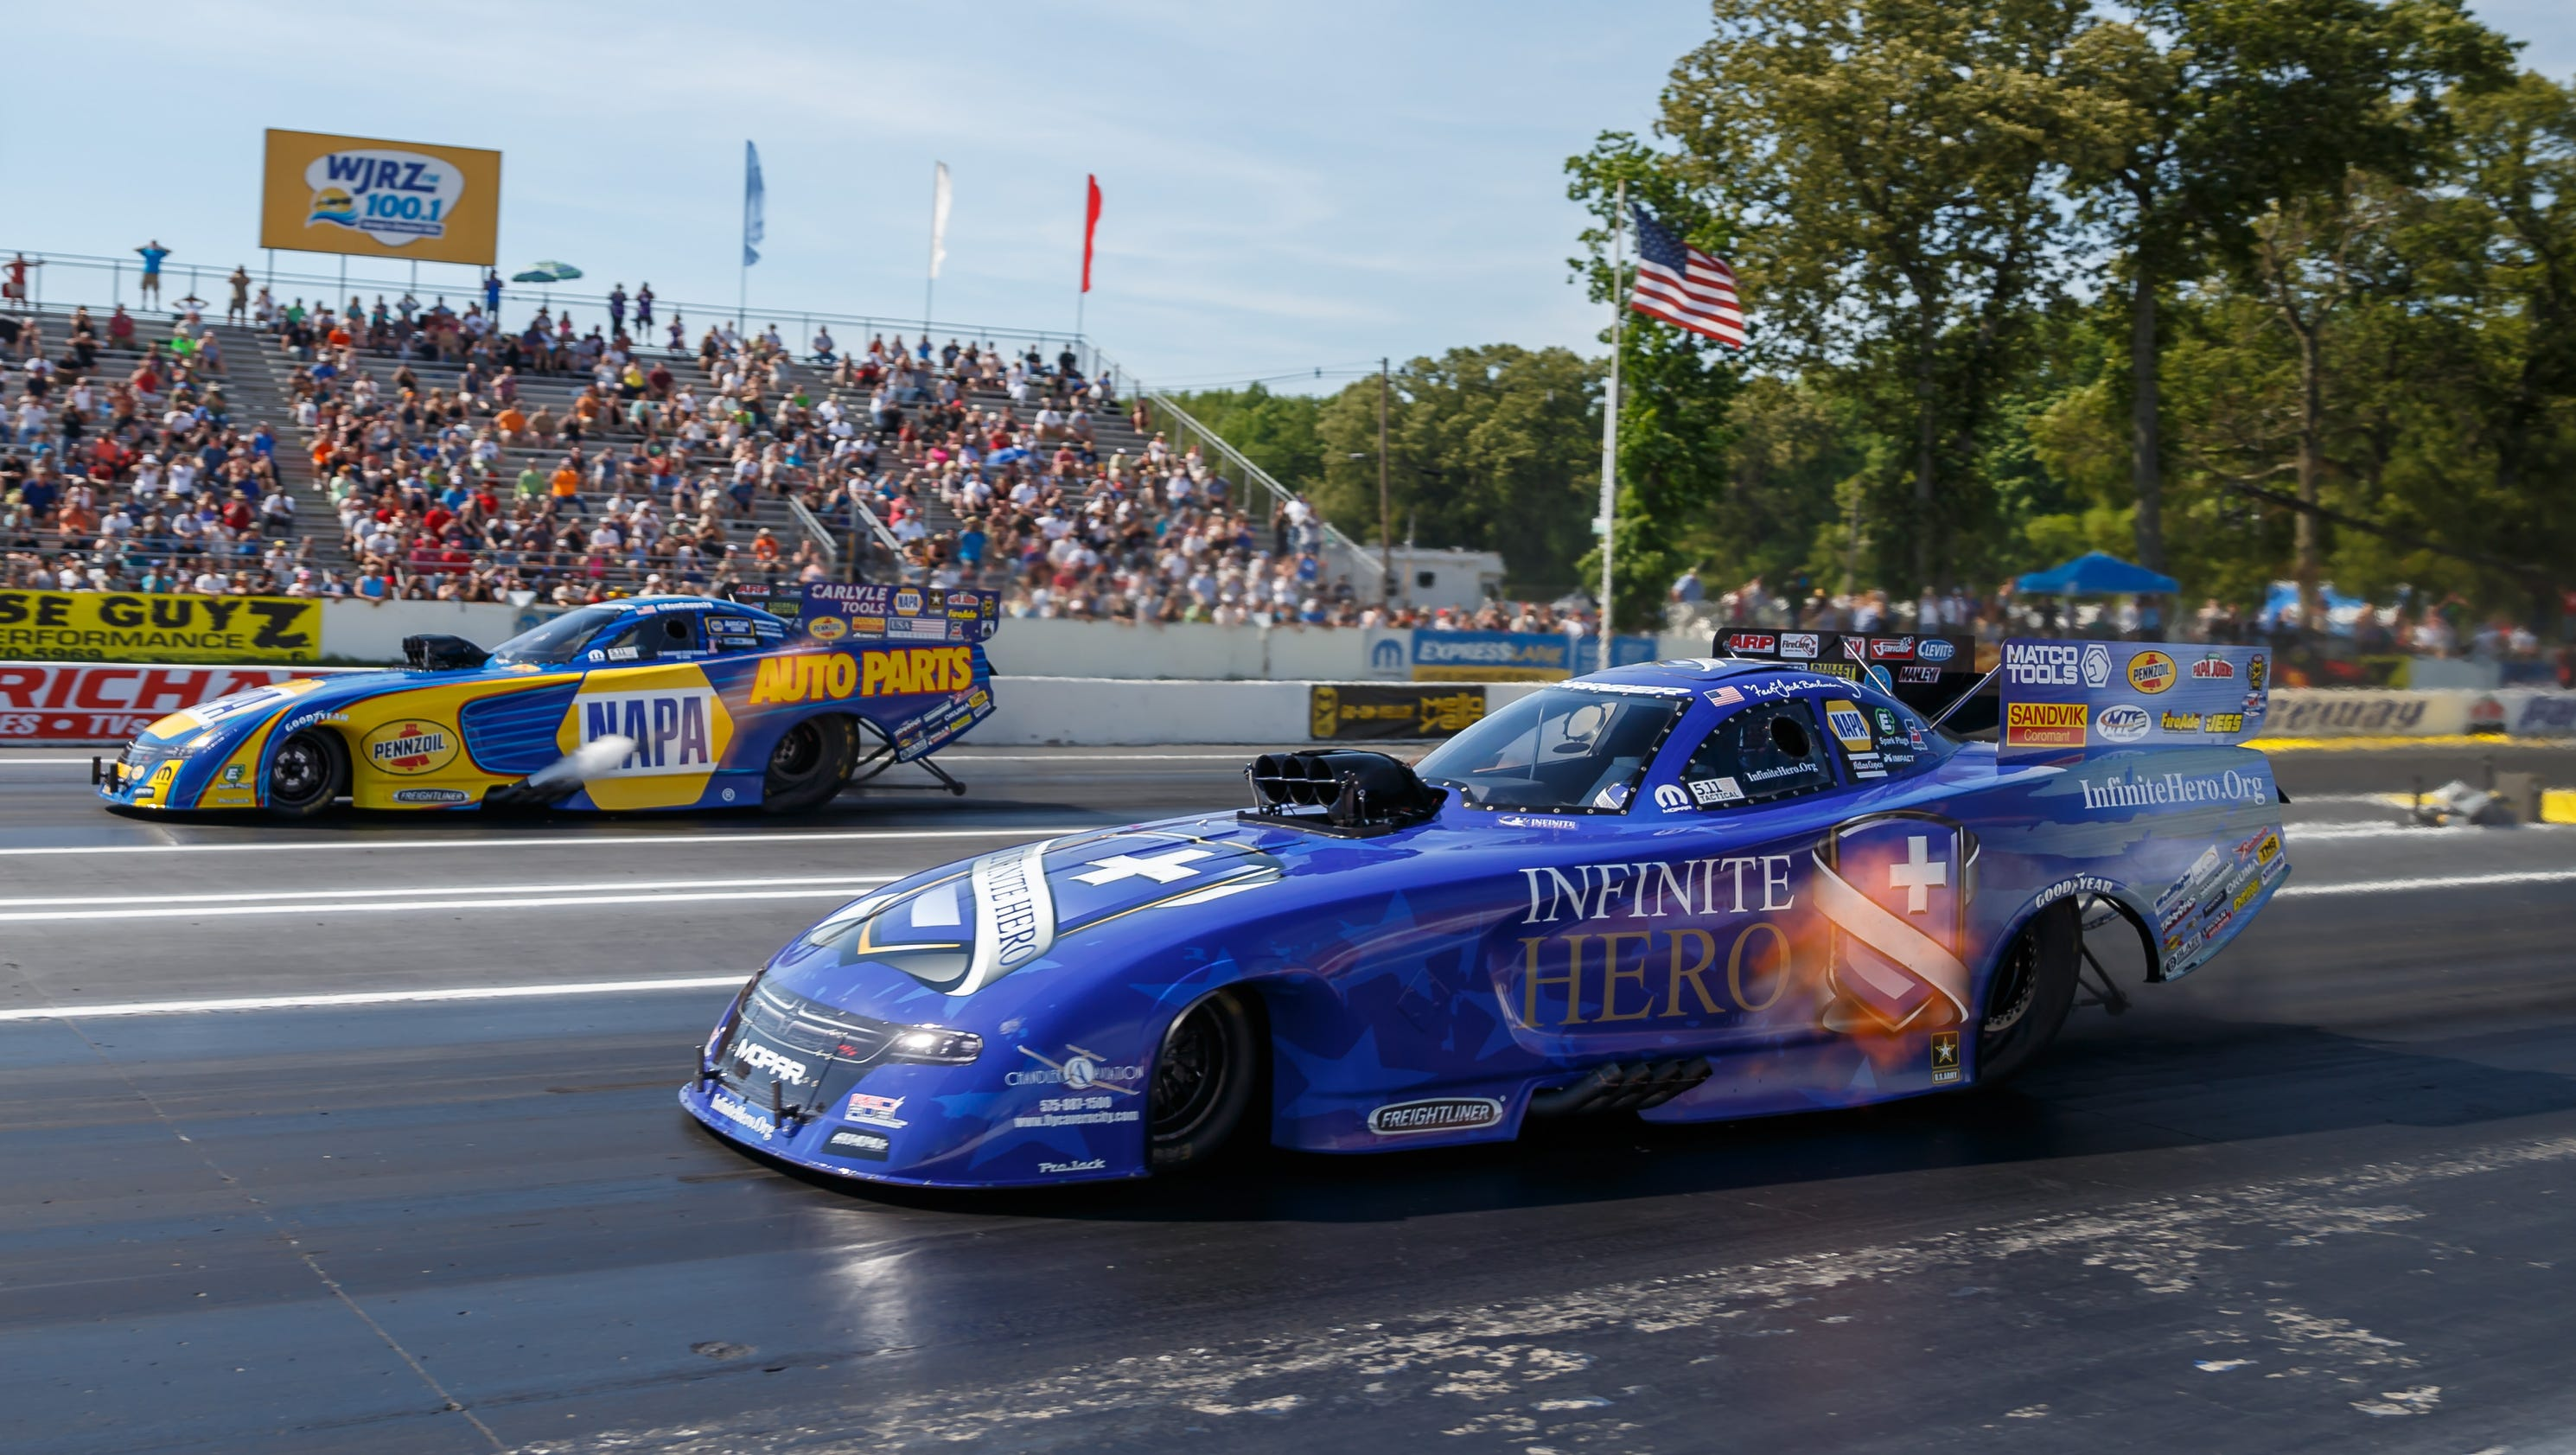 BRISTOL, Tenn. (Dec. 20, ) - The roar in Thunder Valley is back and better than ever in , as Bristol Dragway plays host to a combination of fan-favorites, including the ground-pounding action of the NHRA Mello Yello Drag Racing Series, and new events, including the .